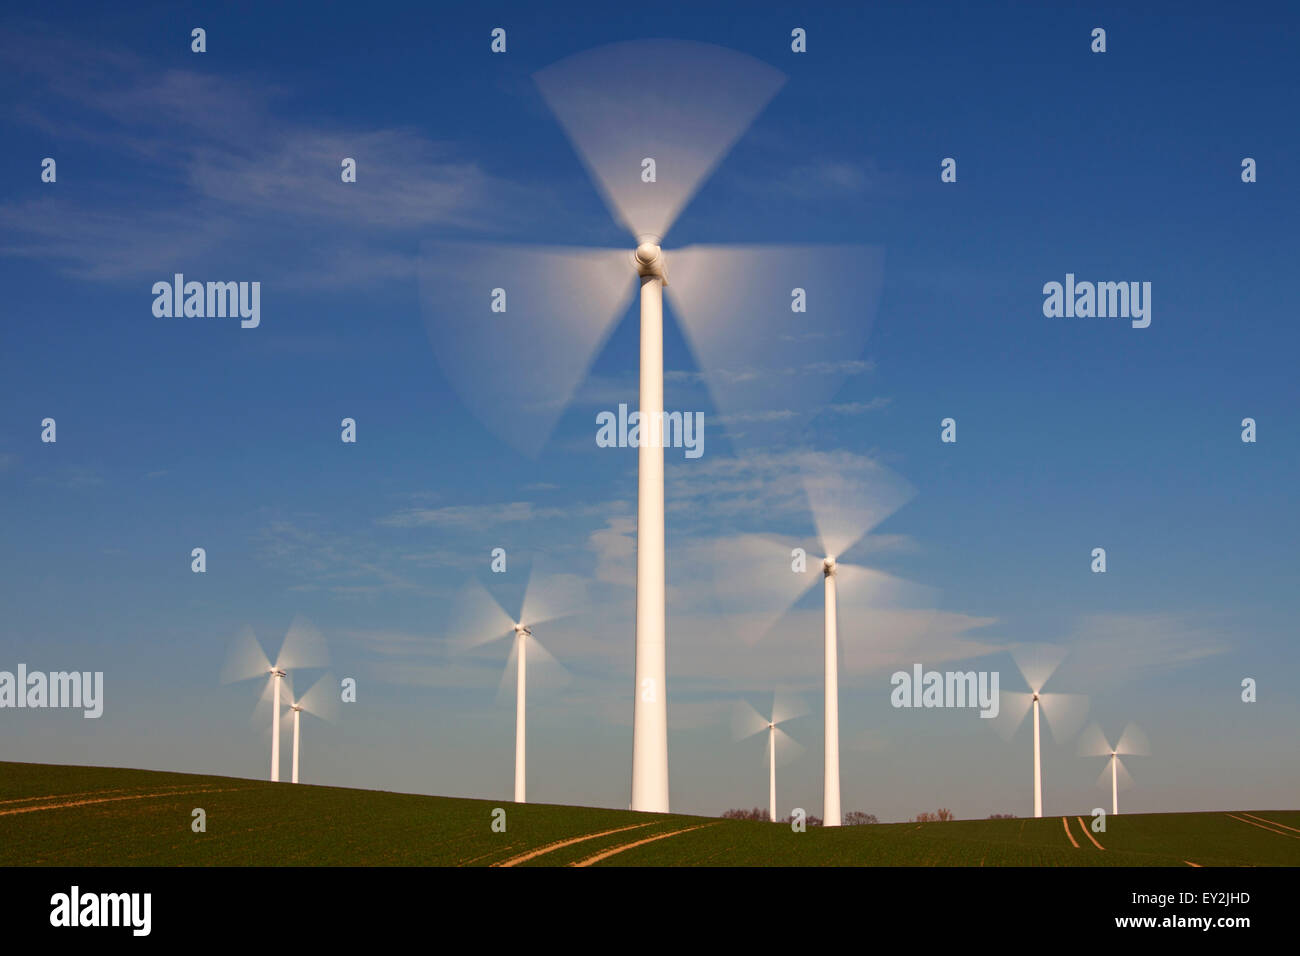 Spinning blades of wind turbines at windfarm against blue sky - Stock Image